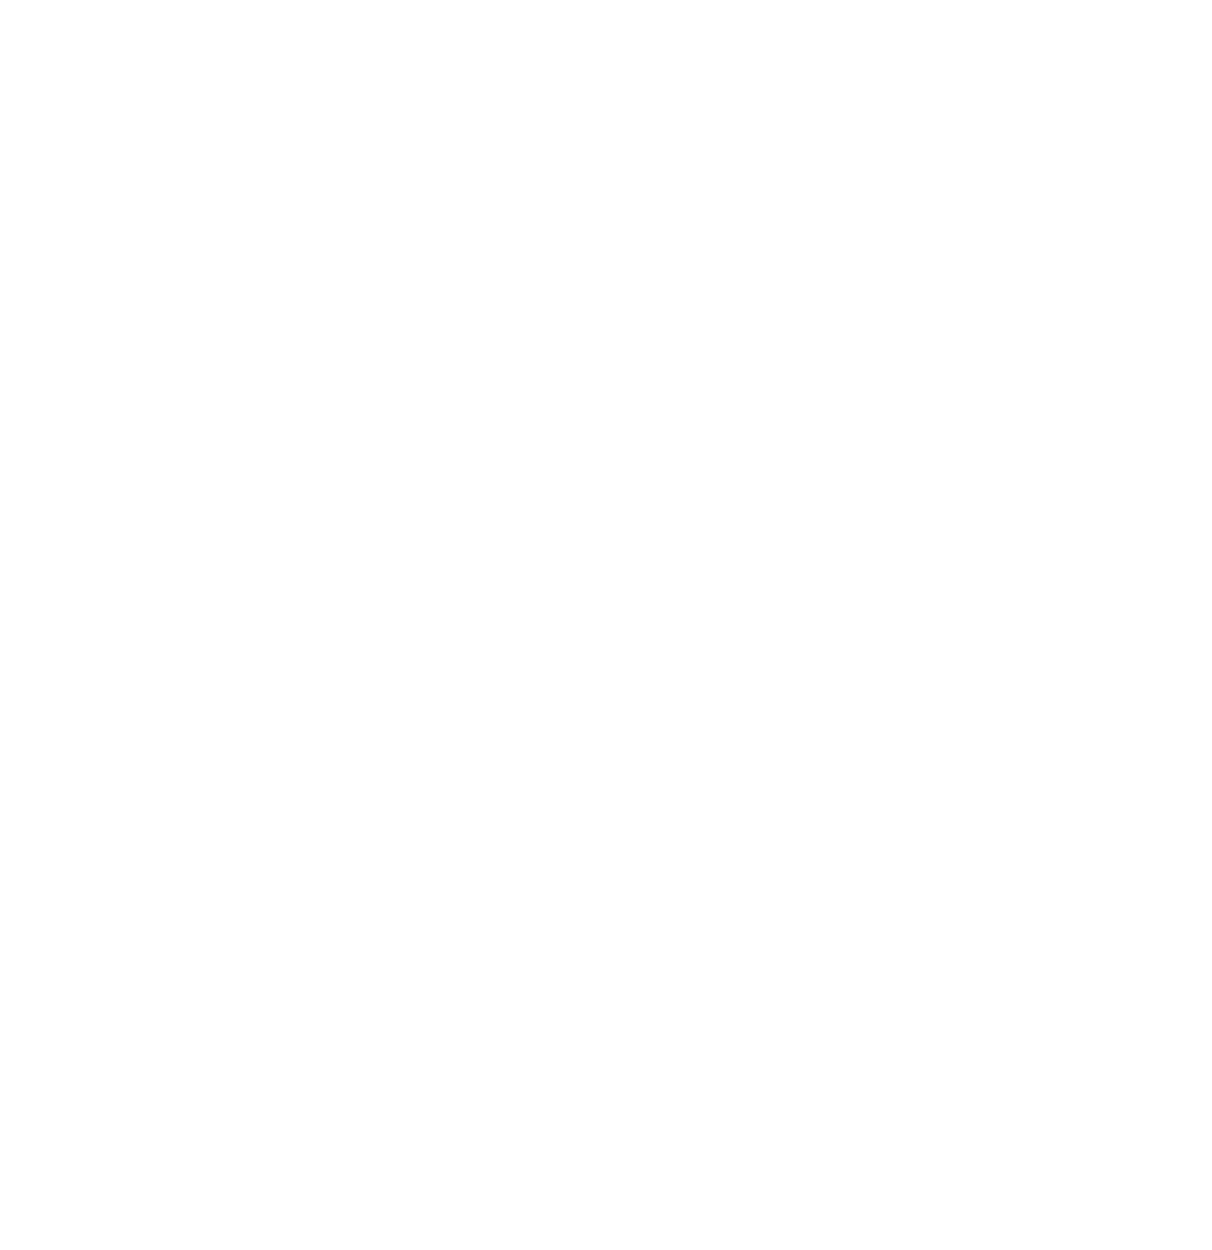 Tennessee Wood Flooring and their logo. Tennessee Wood Flooring is a local, authentic Wood Flooring Manufacturer and seller located in East Tennessee Near knoxville, sevierville, gatlinburg, pigeon forge, and asheville.